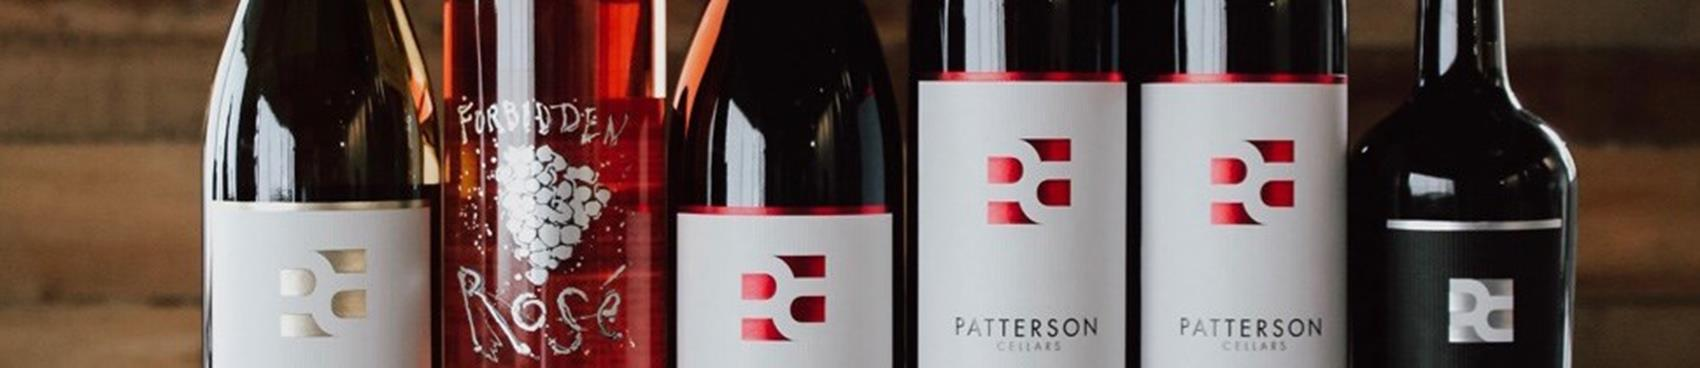 Purchase Tickets to Fall 2019 Release Party - WAREHOUSE DISTRICT Winery at Patterson Cellars on CellarPass